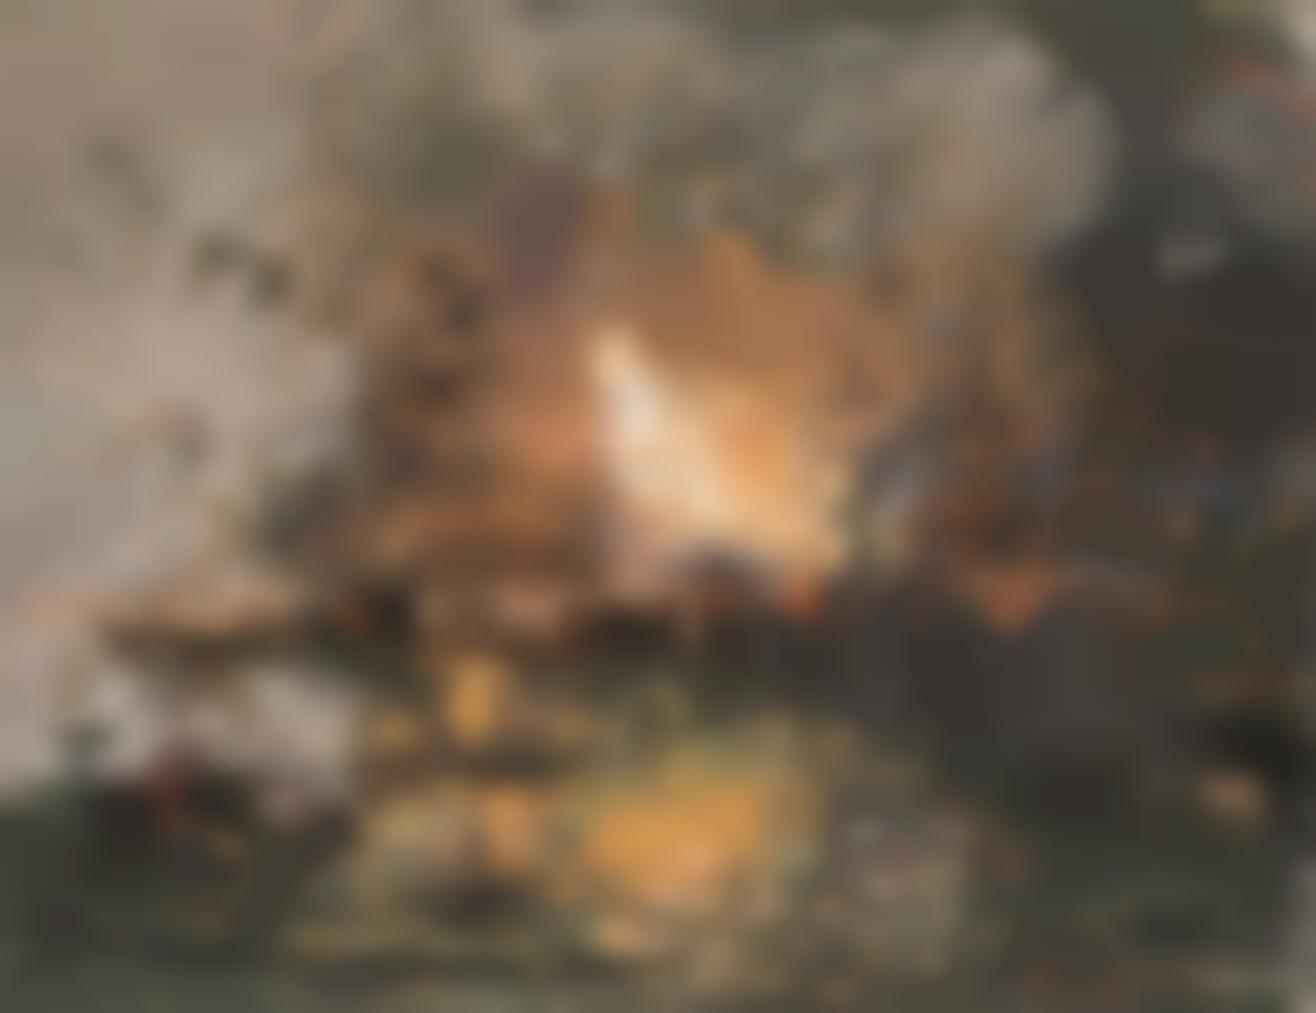 Pompeo Mariani - Boat On Fire In A Harbour-